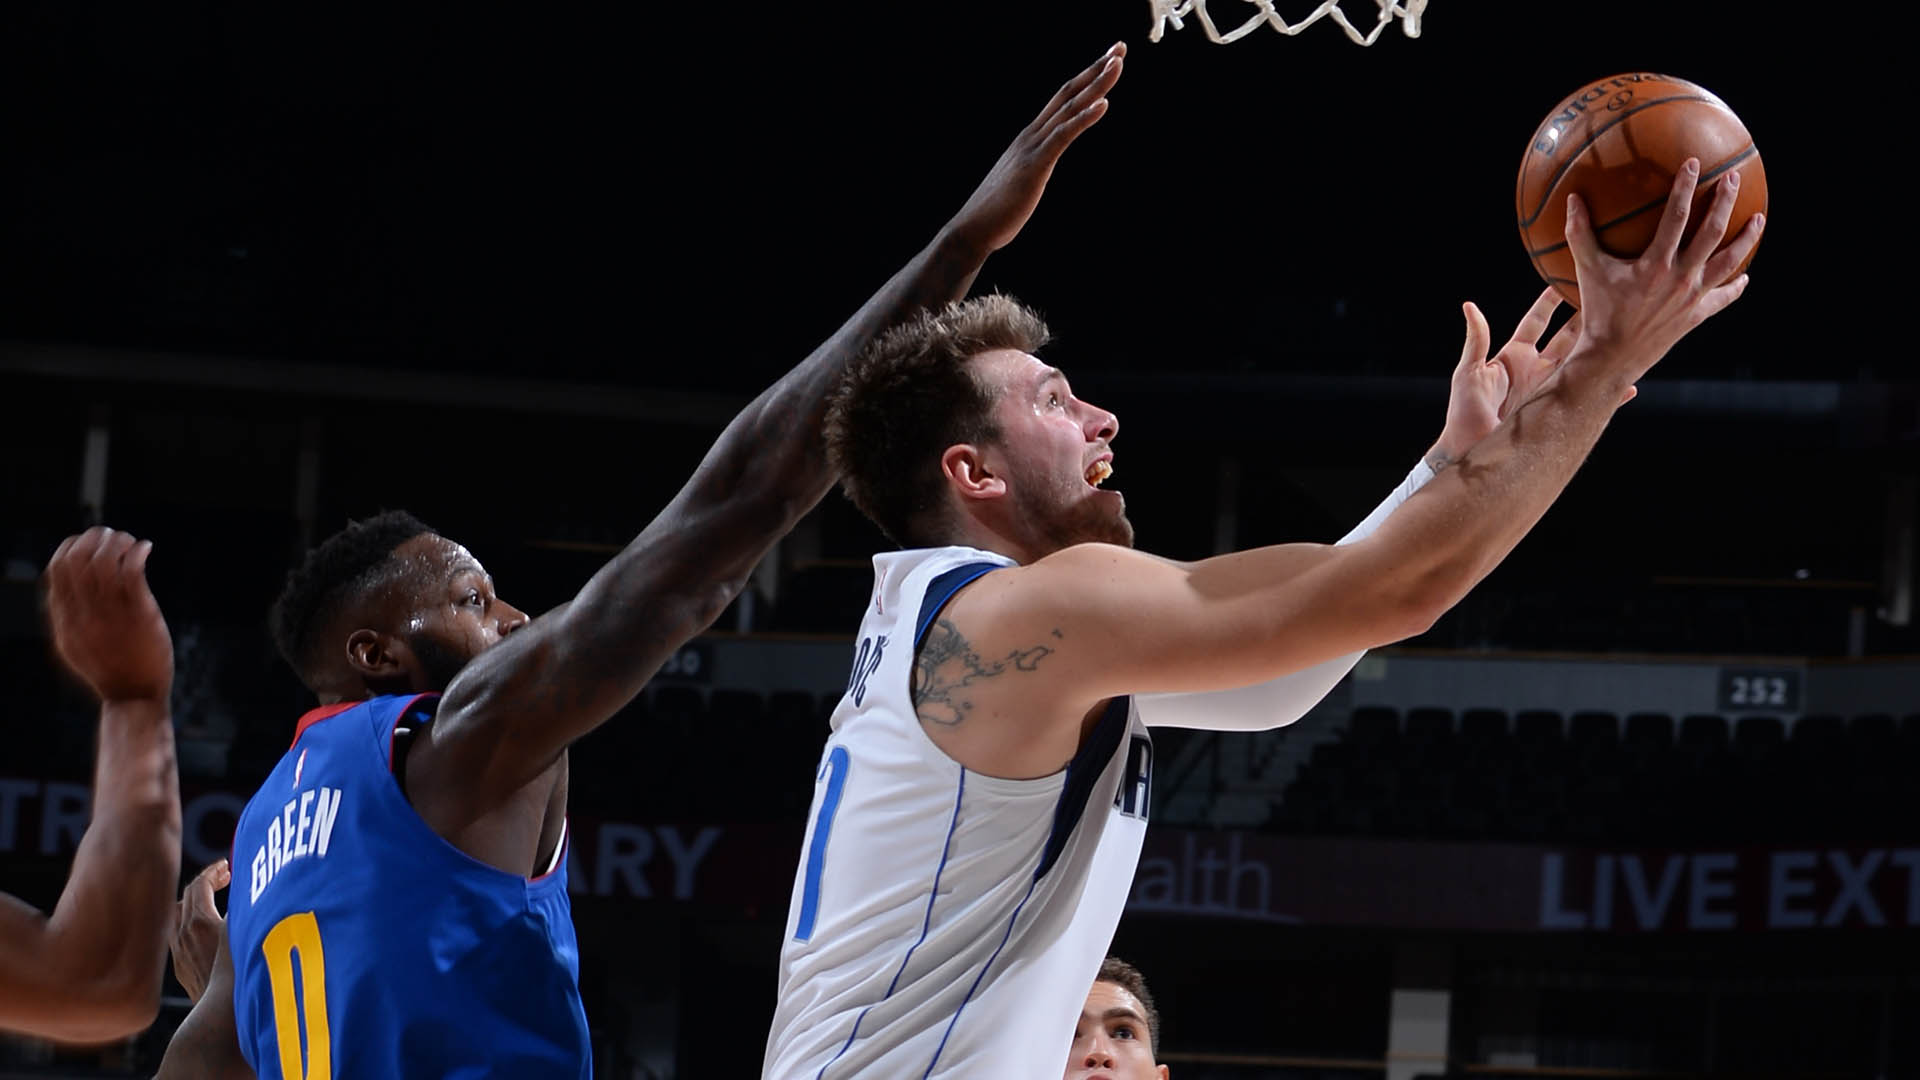 Luka Doncic helping Mavs take care of clutch-time business